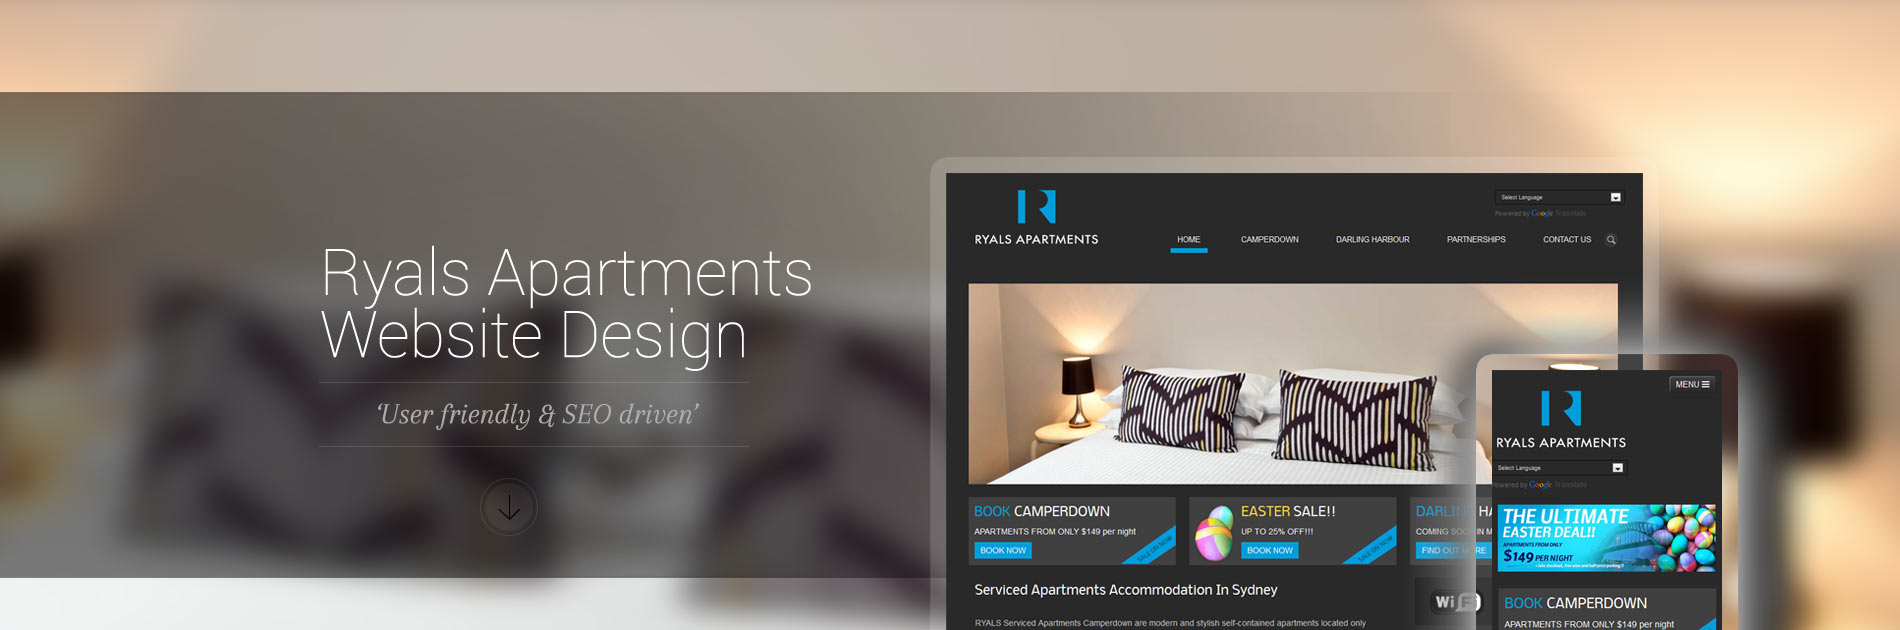 Web Design Ryals Apartments Sydney